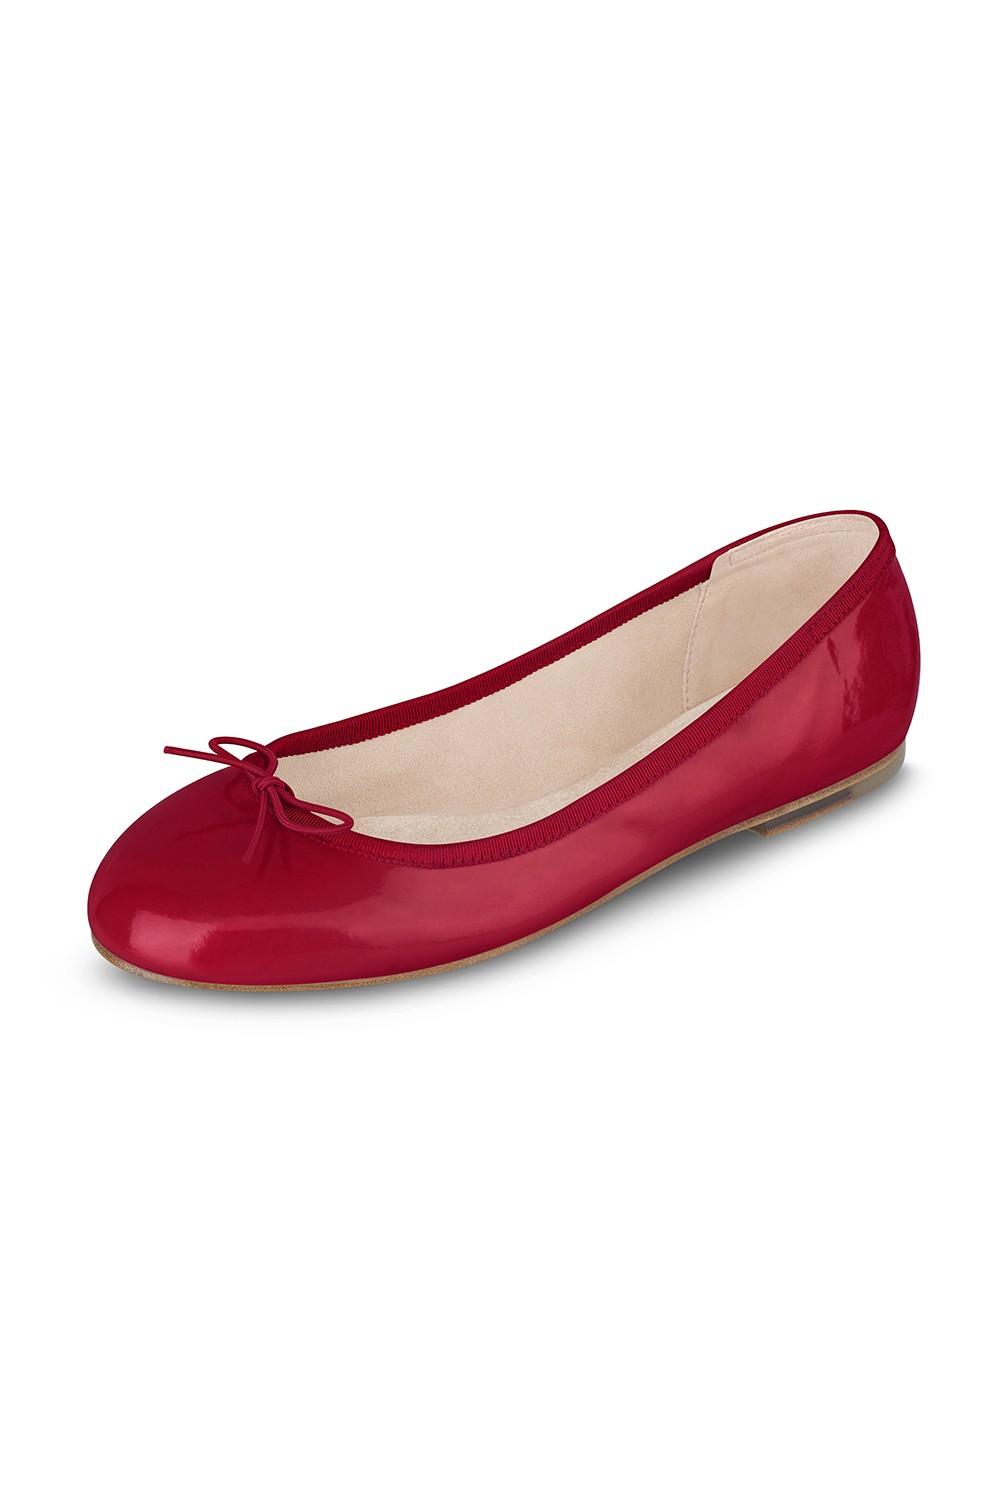 Soft Patent Ballerina Womens Fashion Shoes